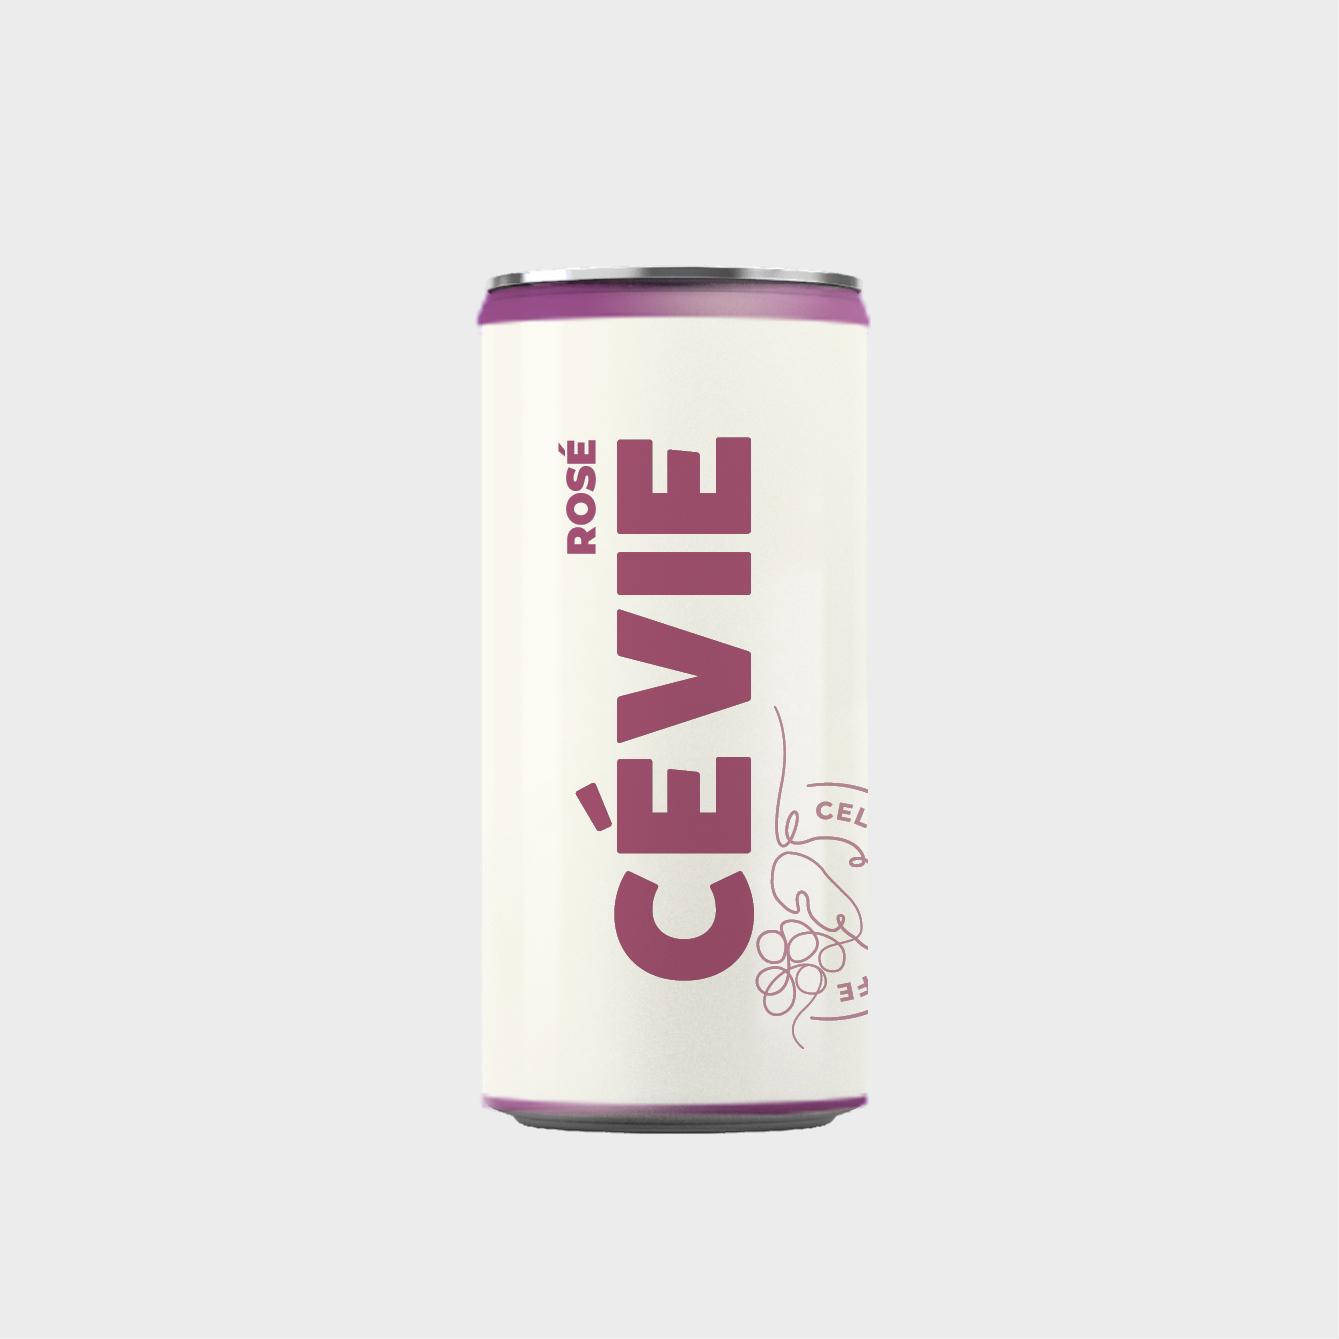 Cevie label design – rosé på dåse. FRIDAJOHS design studio